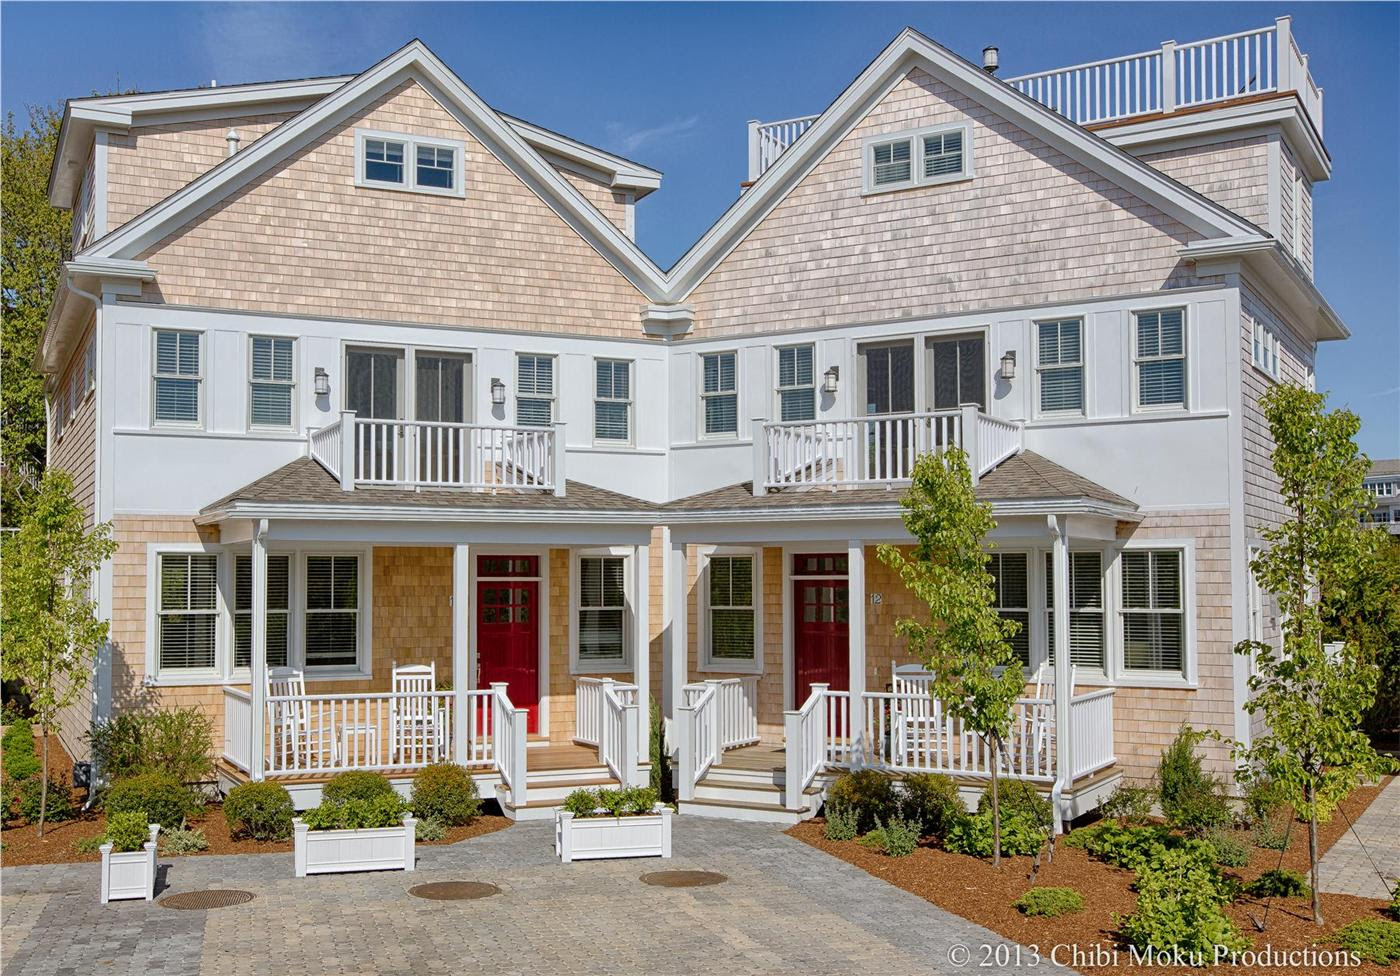 Provincetown Vacation Rental home in Cape Cod MA 02657